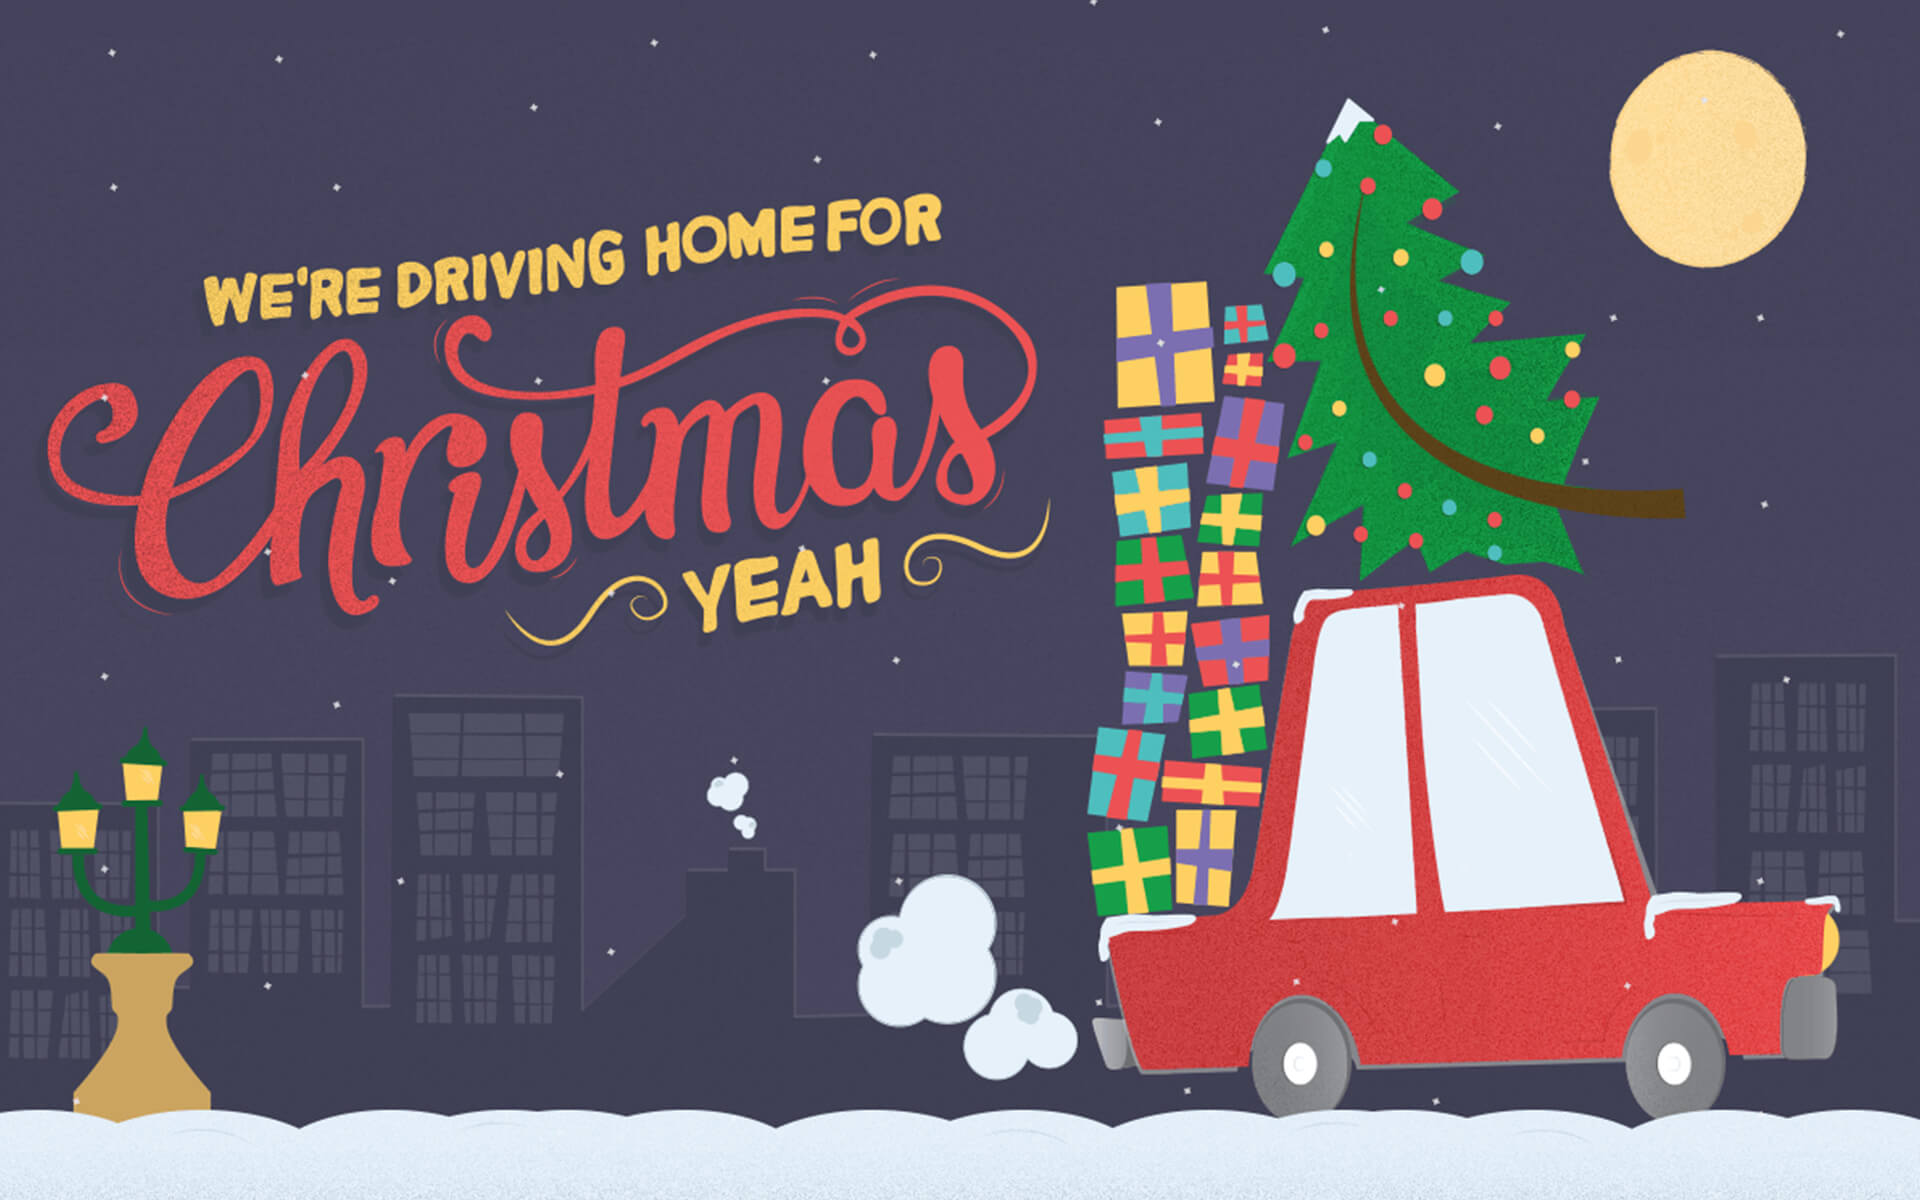 Coming Home For Christmas 2019.Driving Home For Christmas Design Agency Newcastle Cargo